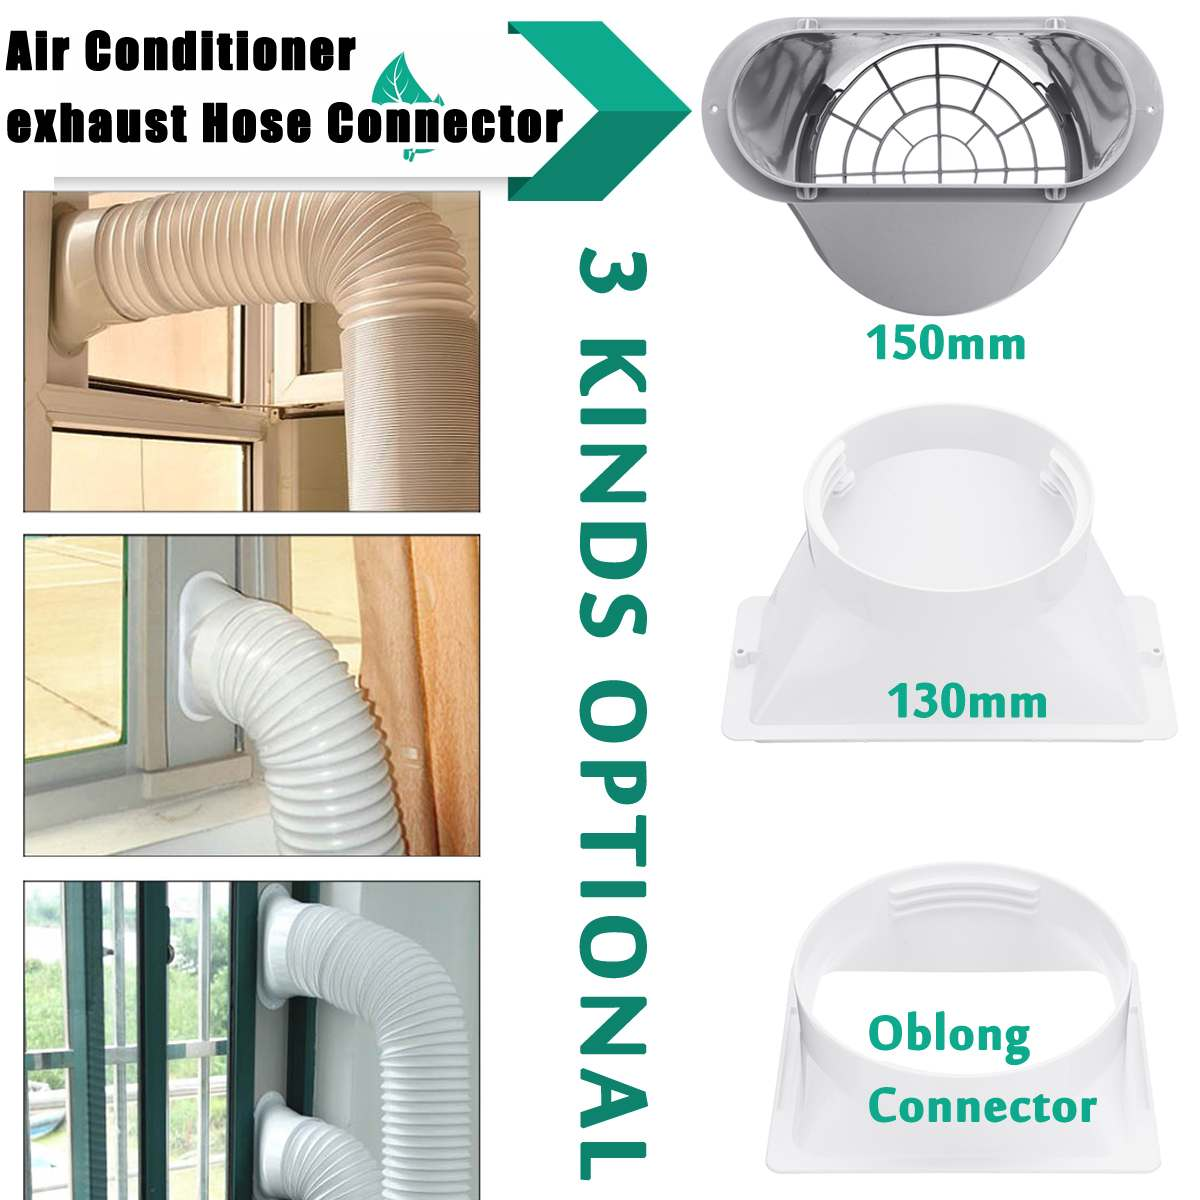 Air Conditioner Window Pipe Interface Exhaust Hose/Tube Connector Heating Cooling Vents Ventilation Exhaust Outlet Grille Cover